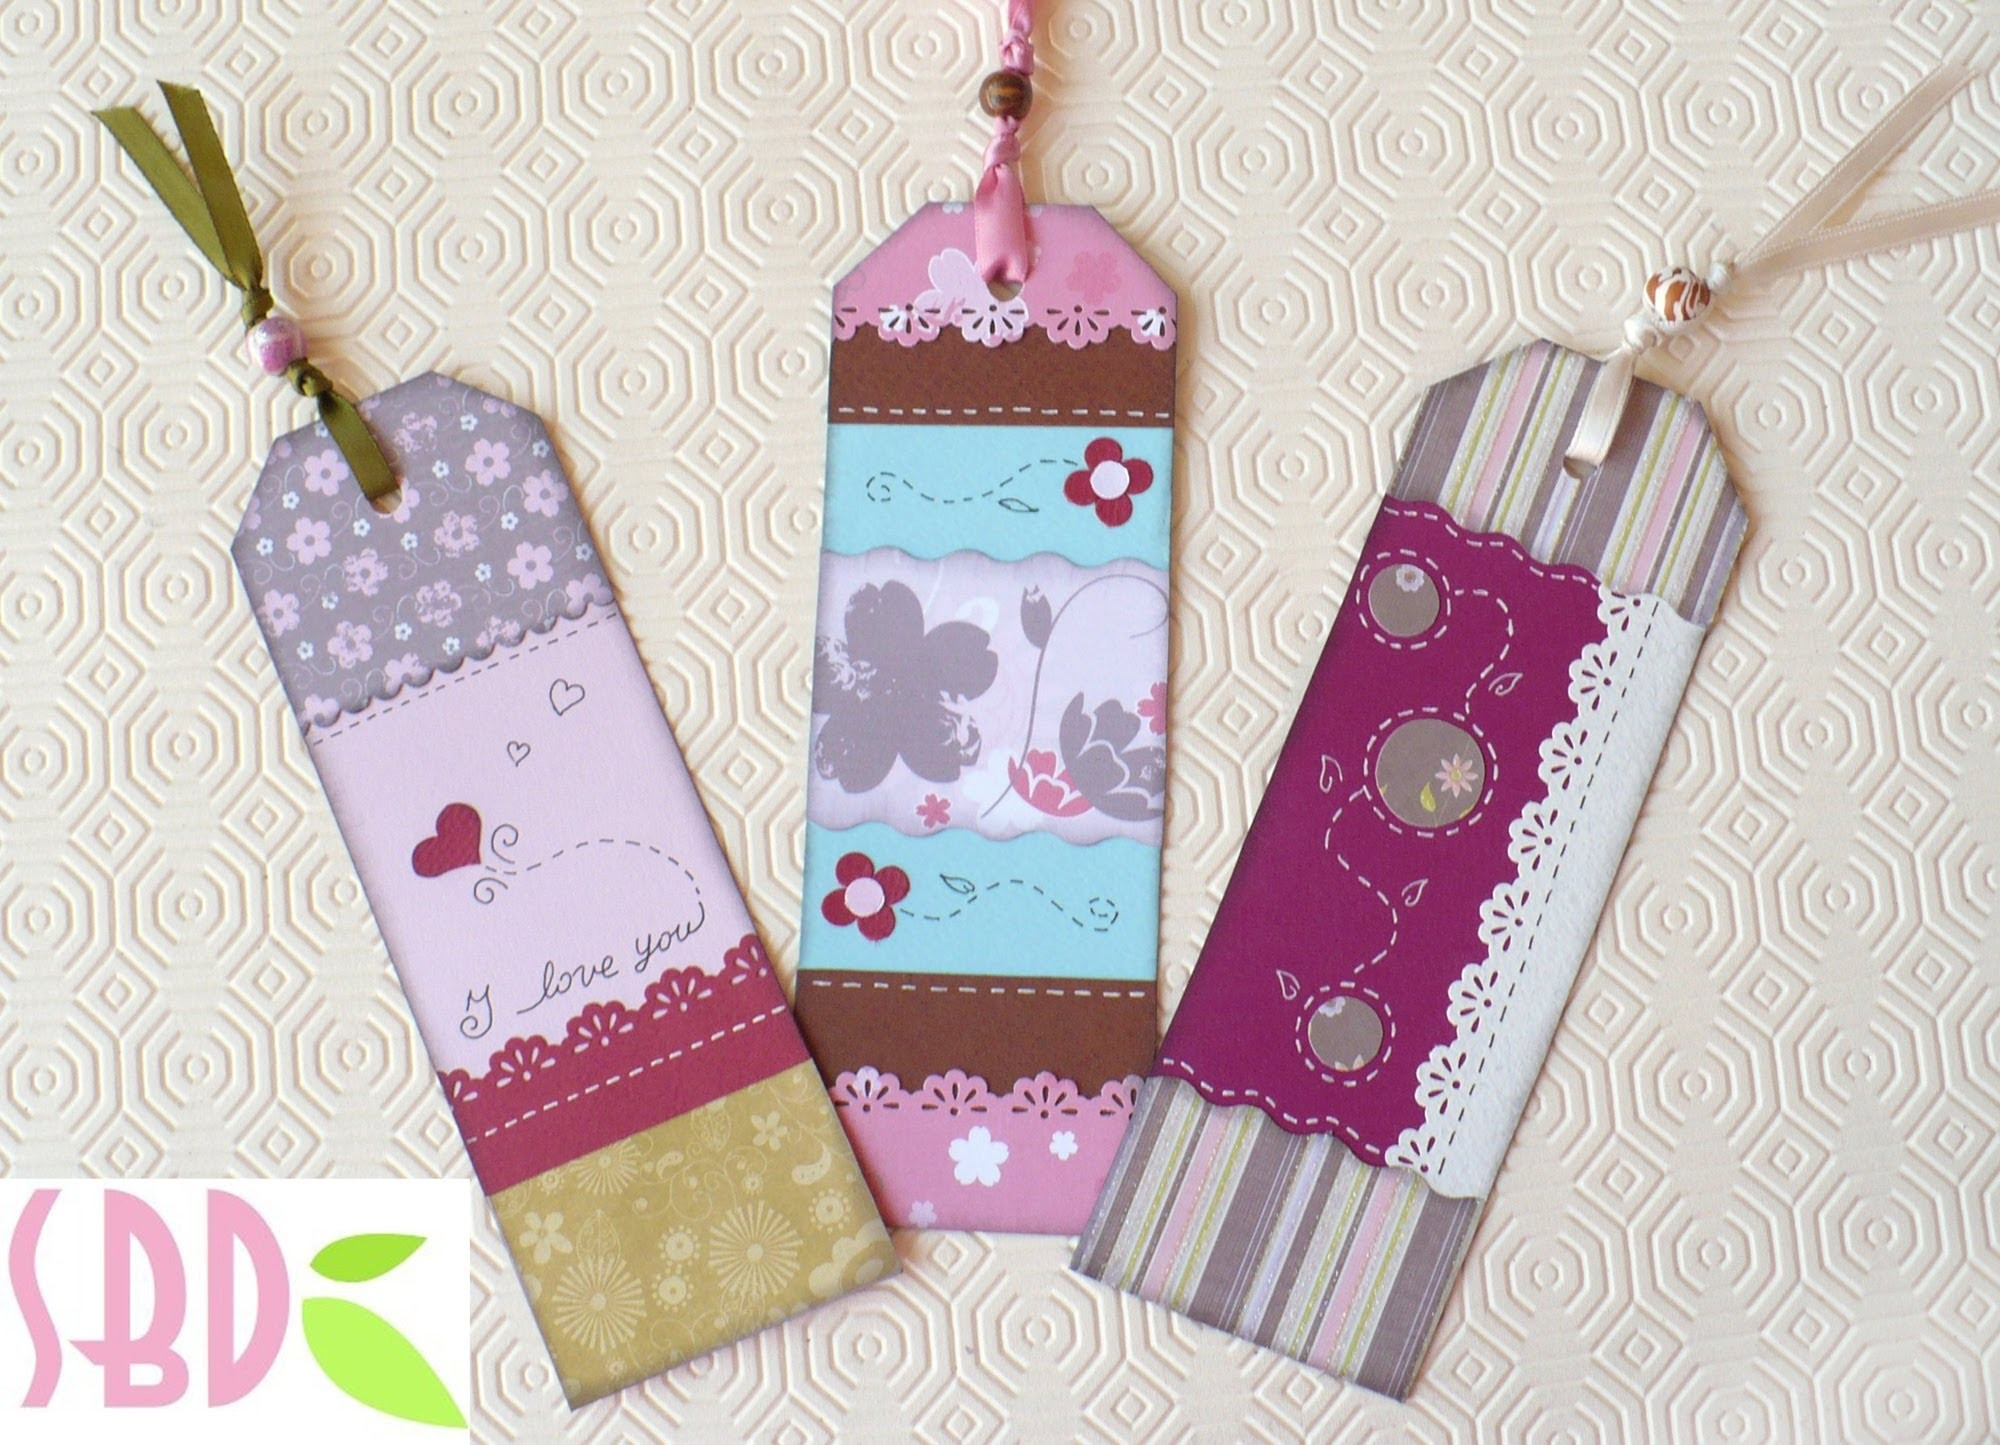 Scrapbooking Tutorial: segnalibro fantasia! - Fanciful bookmark!